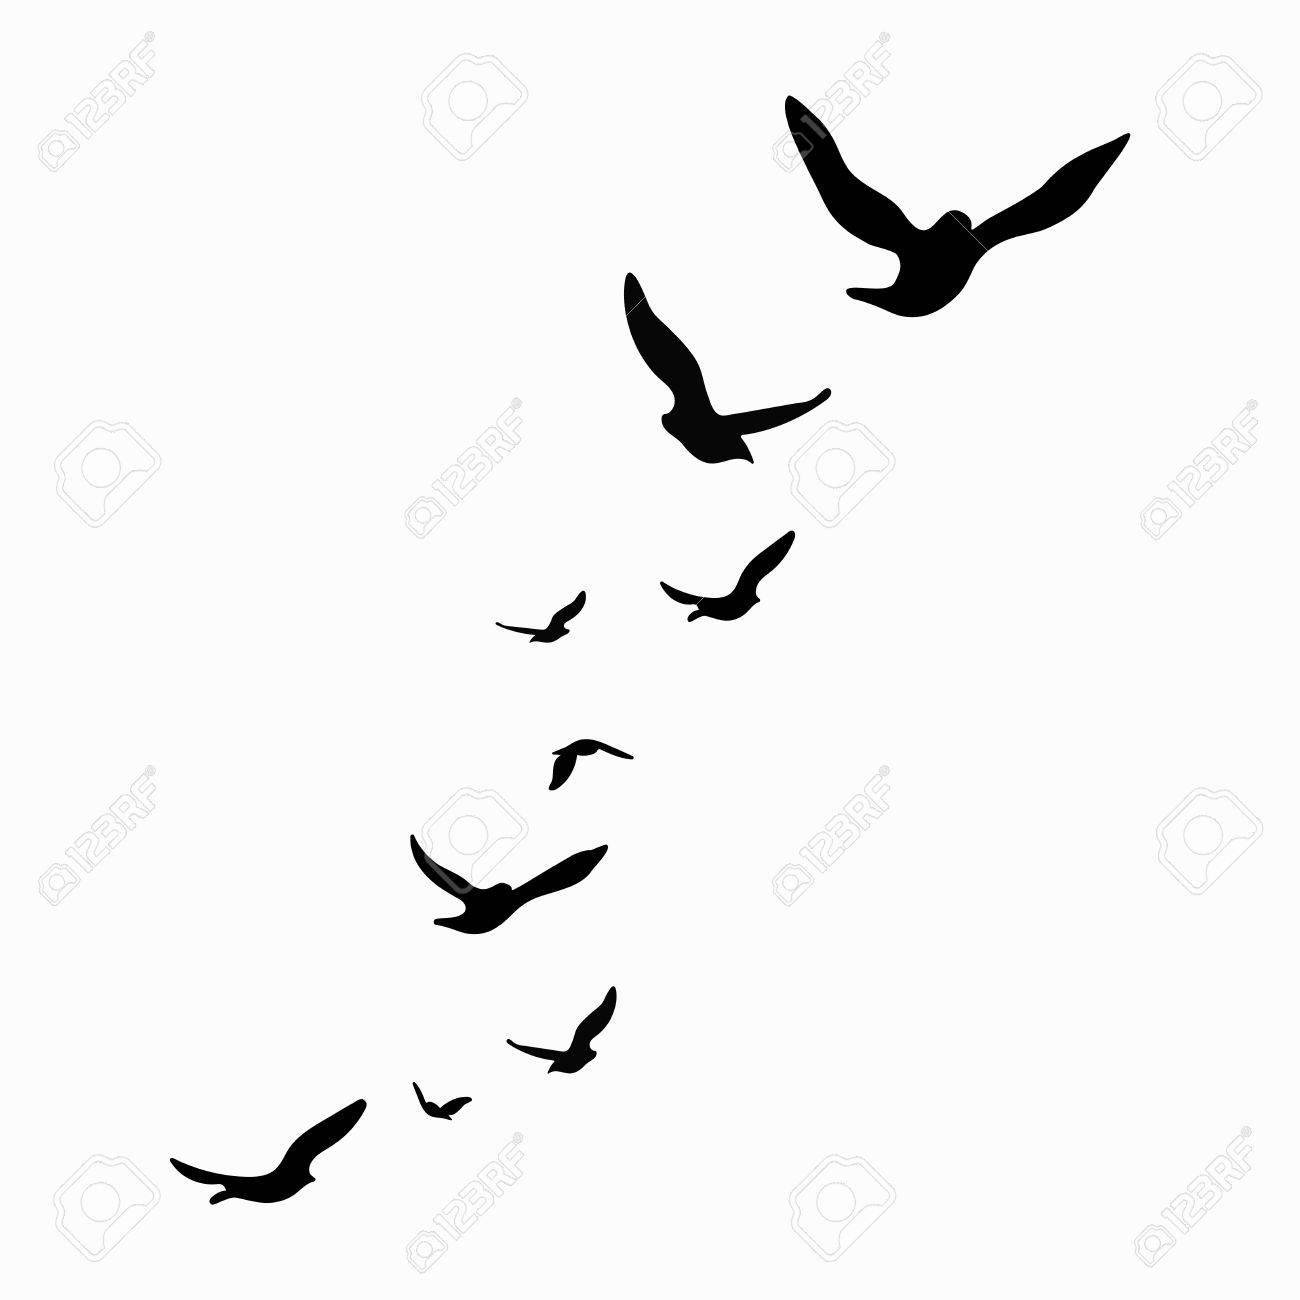 Silhouette Of A Flock Of Birds Black Contours Of Flying Birds with proportions 1300 X 1300